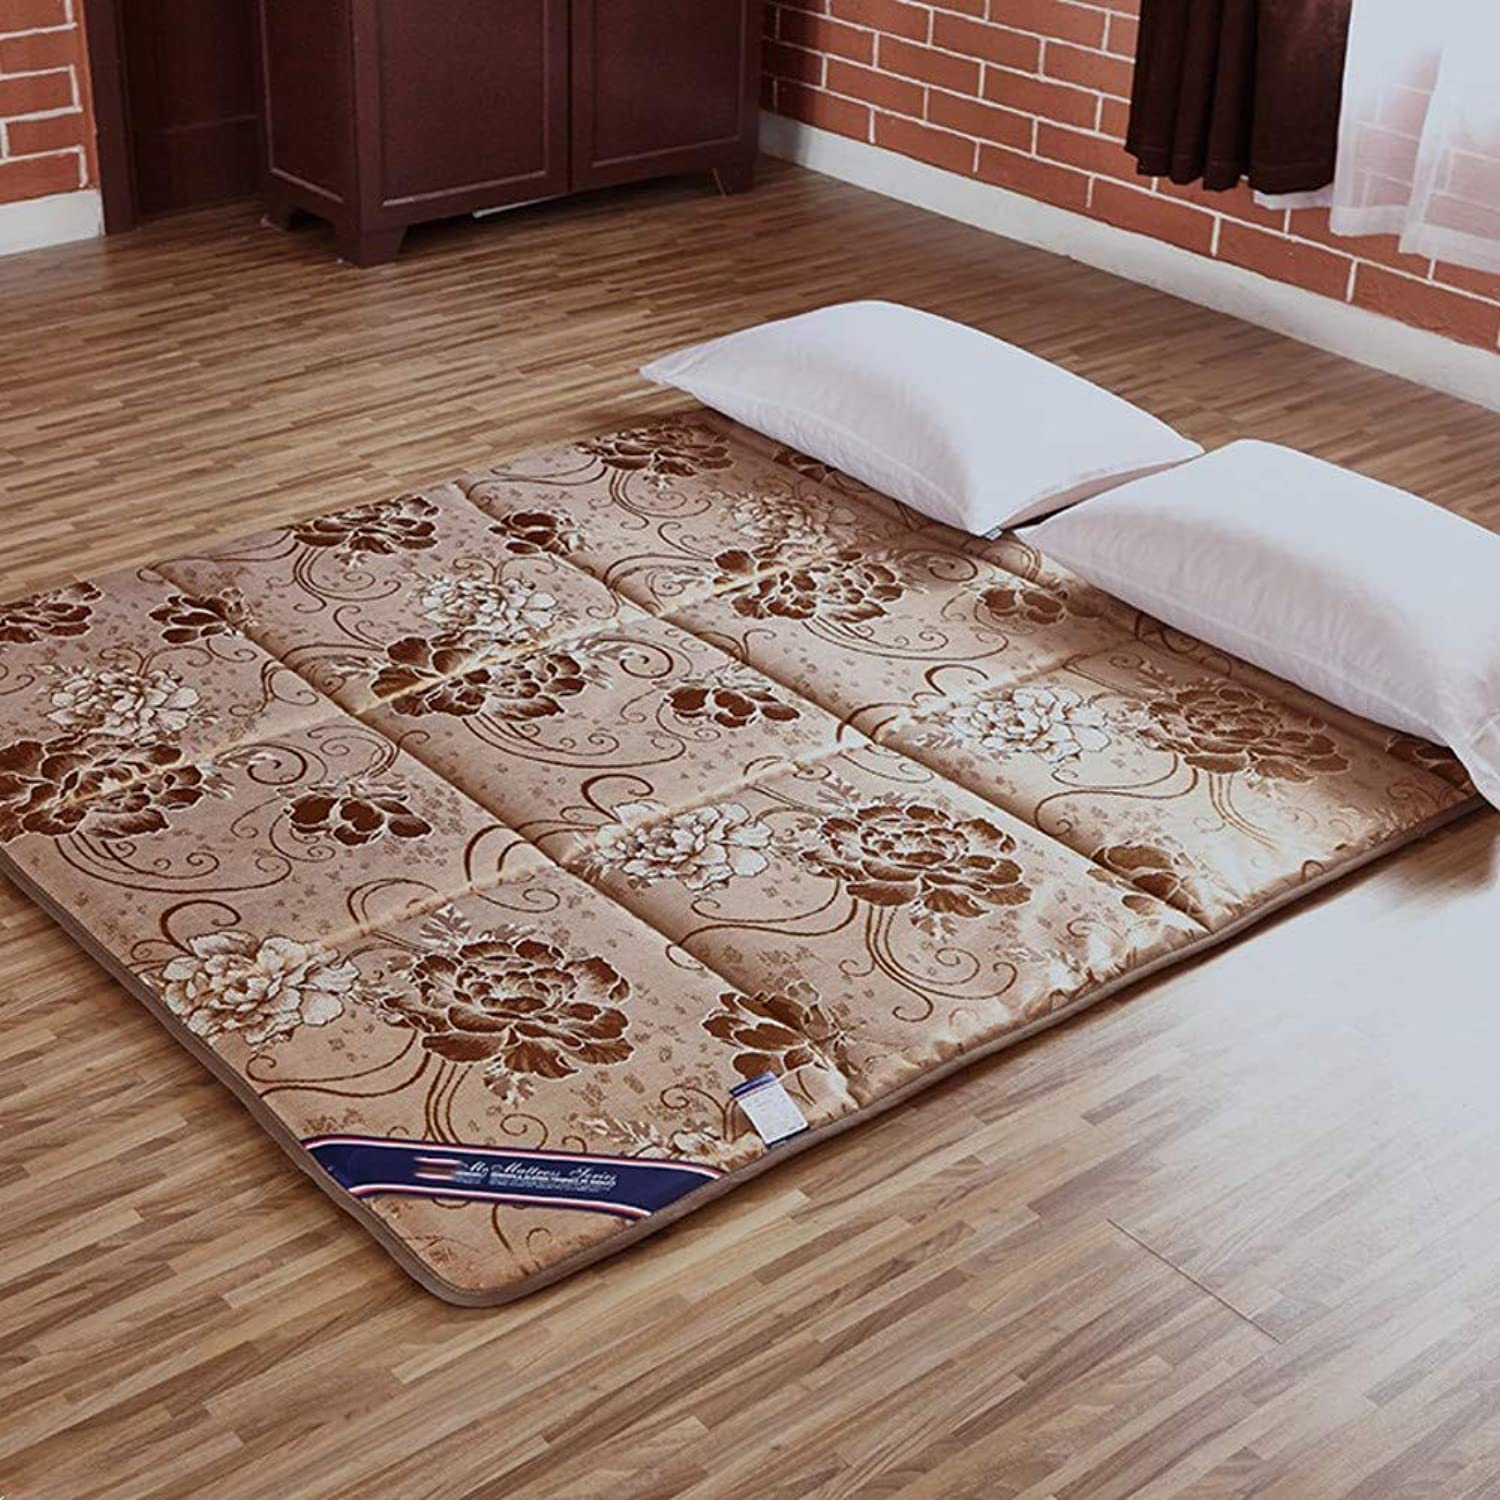 Cool Breathable Mattress, Double Sided Tatami Floor mat, Antibacterial Anti-mite Sleeping pad Washable Foldable Mattress Predector-Light tan 150x220cm(59x87inch)